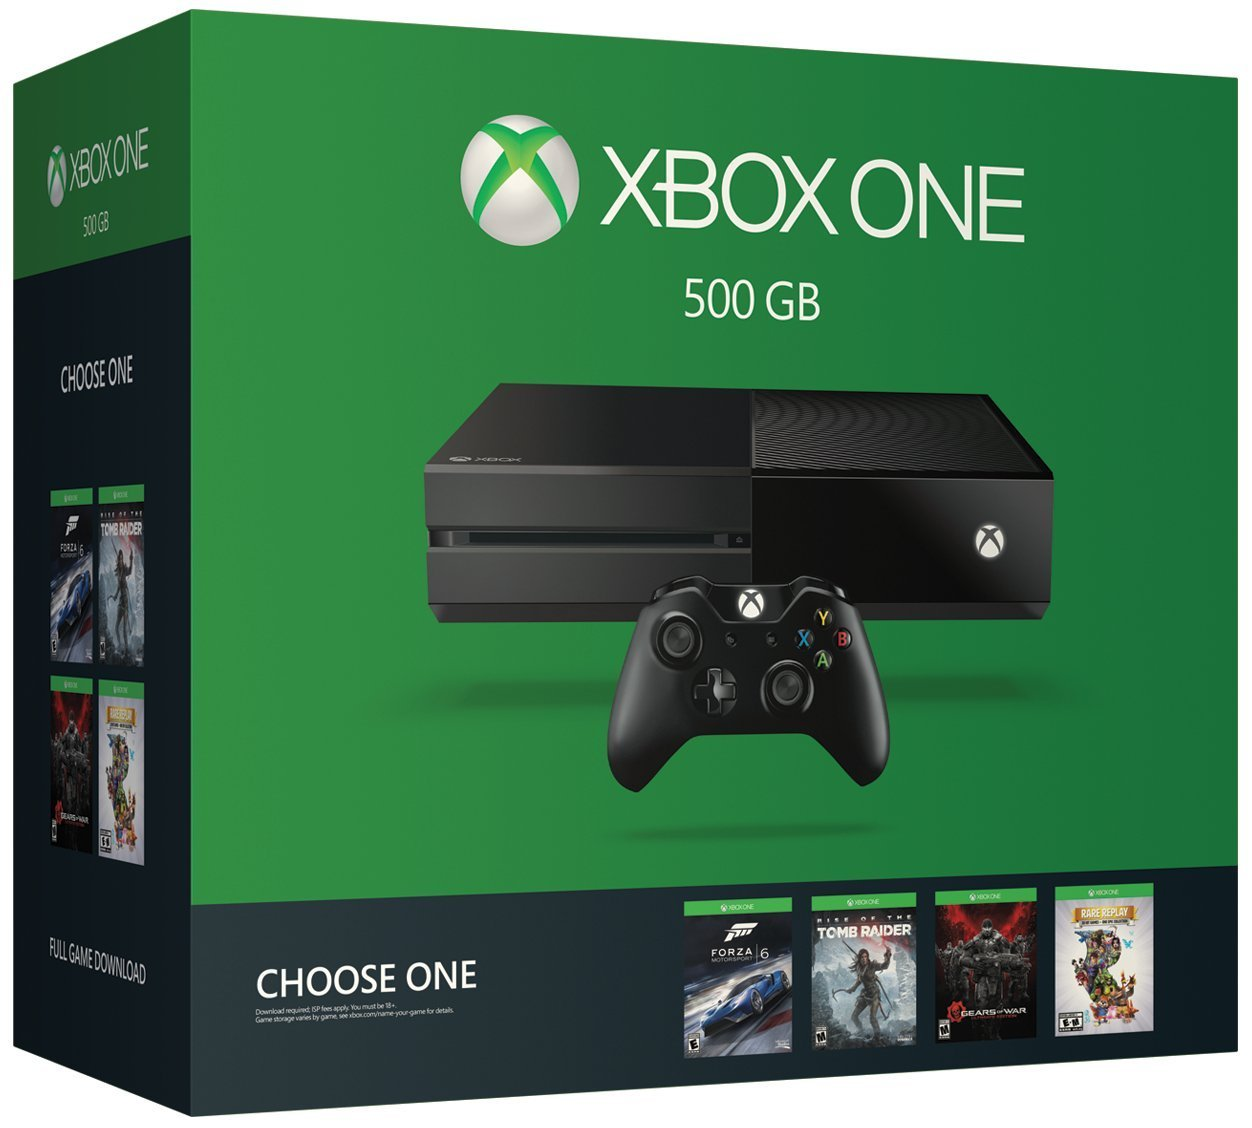 Xbox One 500GB Console - Name Your Game Bundle: XBOX ONE CNSL 500GB 1P-BNDLE EN/FR/ES US/CANADA C-